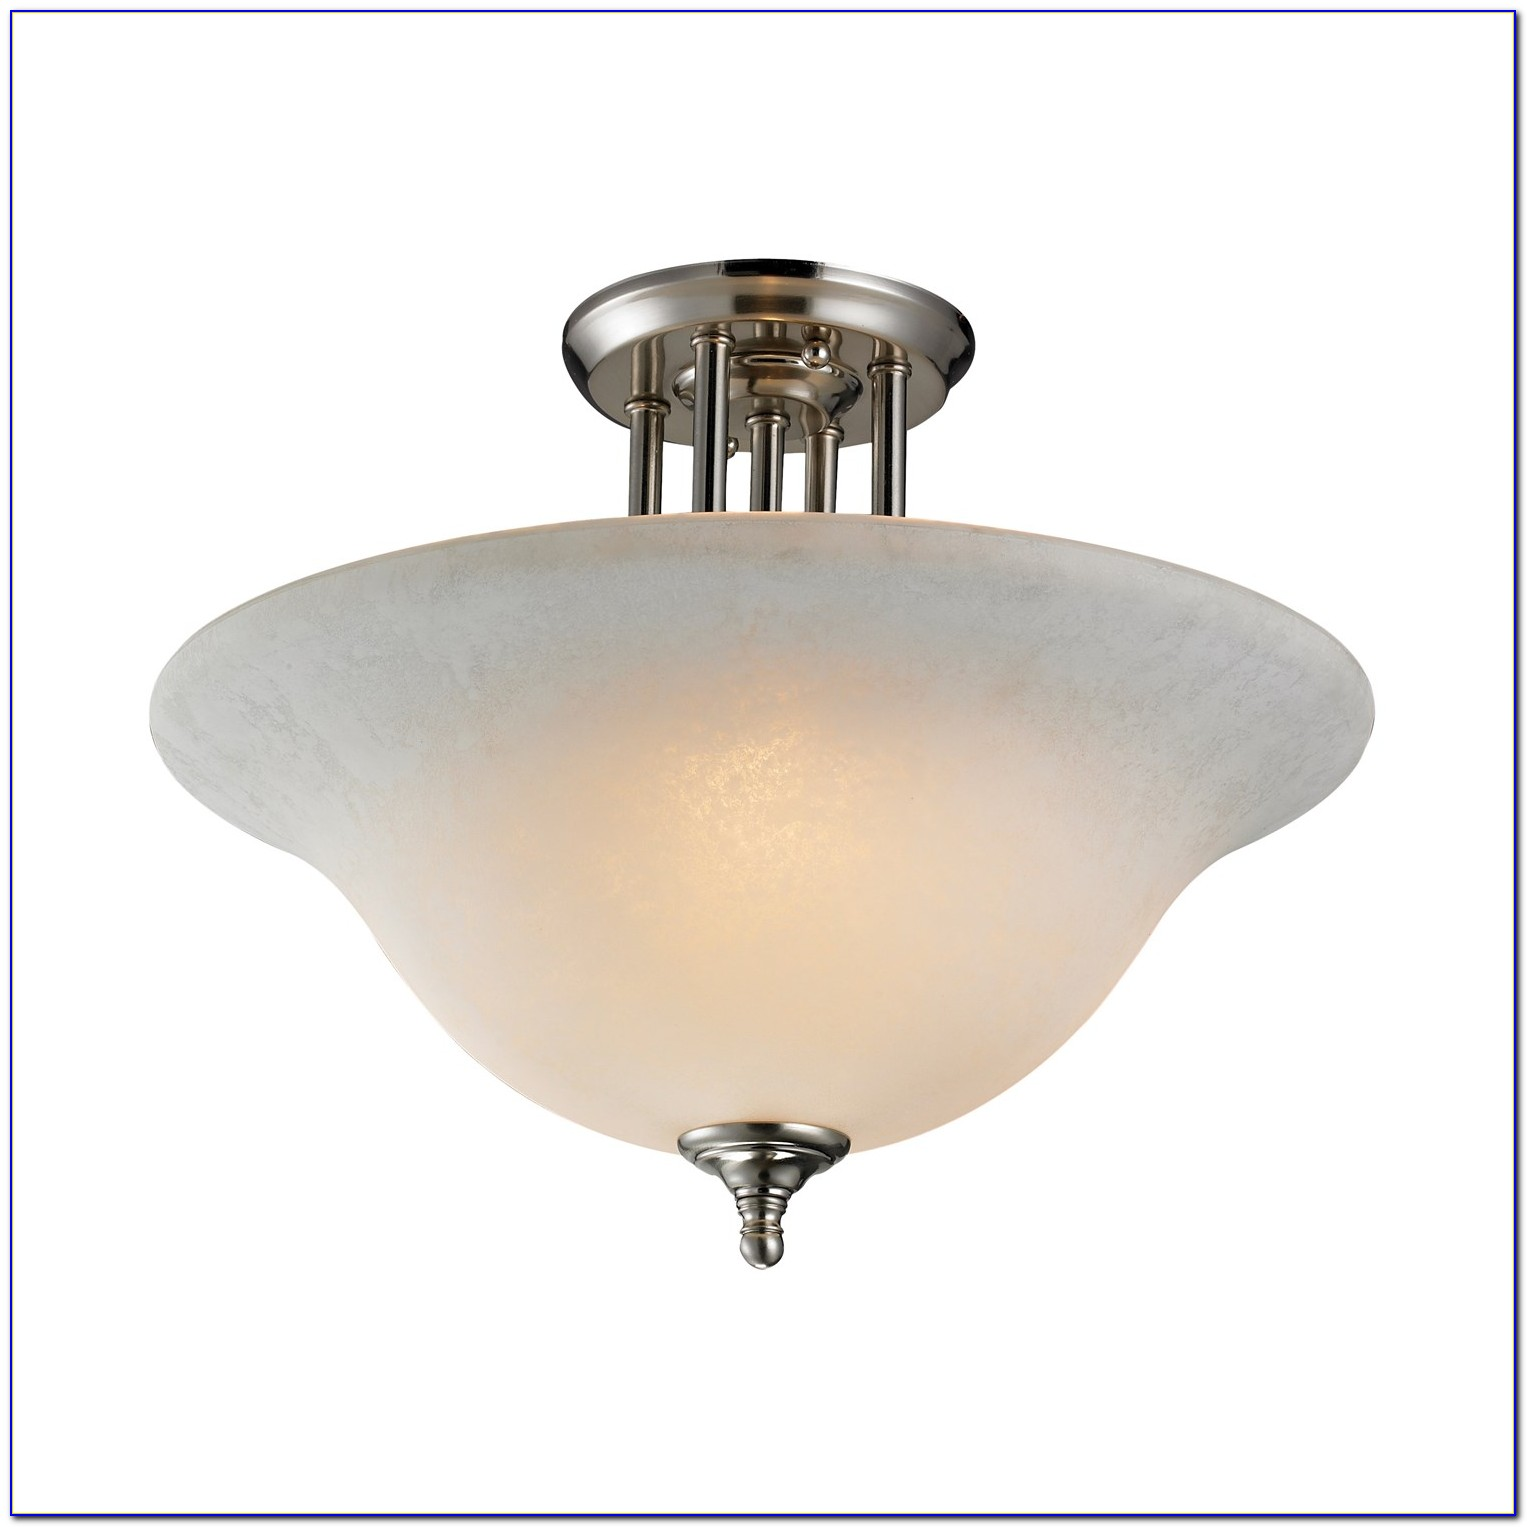 Polished Nickel Semi Flush Mount Light